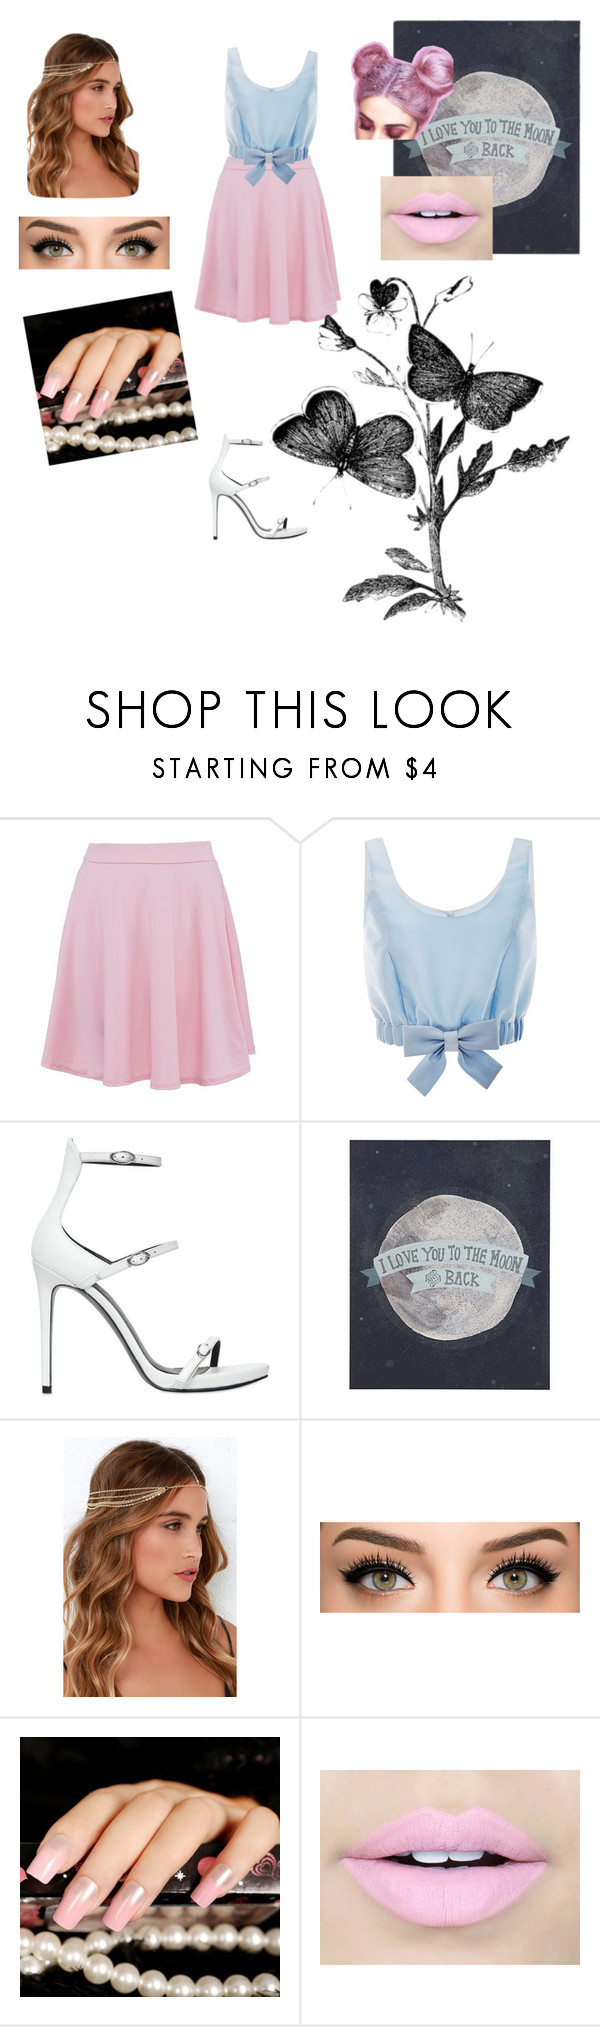 """""""Princess style"""" by carlyfaithh ❤ liked on Polyvore featuring Honor, Kendall + Kylie, LULUS and Fiebiger"""